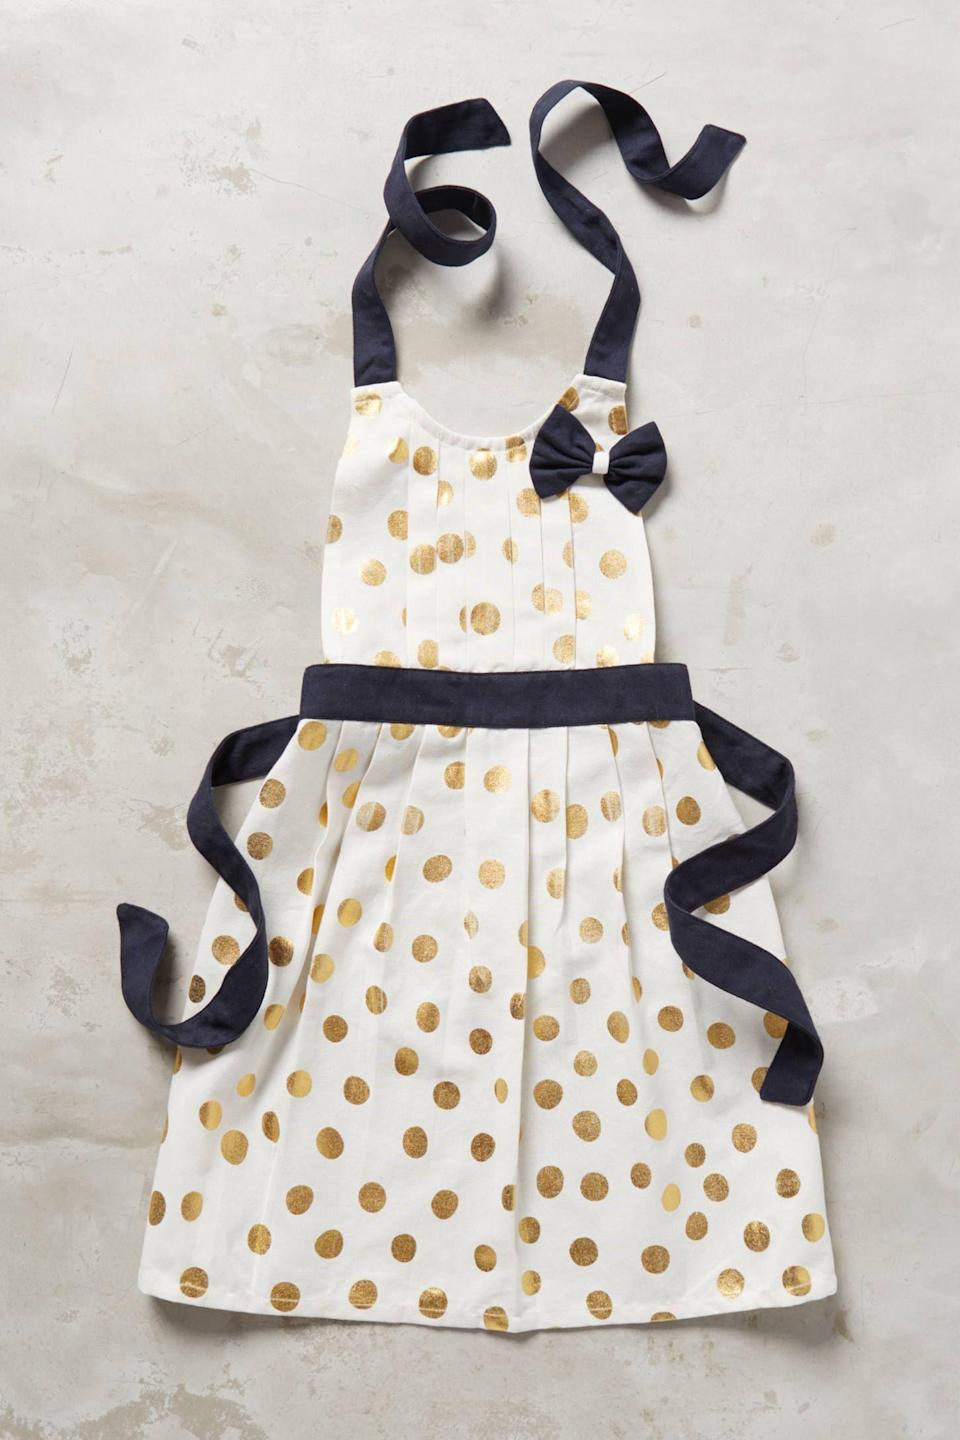 """<p><strong>Anthropologie</strong></p><p>anthropologie.com</p><p><strong>$24.00</strong></p><p><a href=""""https://go.redirectingat.com?id=74968X1596630&url=https%3A%2F%2Fwww.anthropologie.com%2Fshop%2Fgold-polka-dotted-kids-apron-2&sref=https%3A%2F%2Fwww.townandcountrymag.com%2Fleisure%2Fdining%2Fg29576420%2Fcooking-gifts%2F"""" rel=""""nofollow noopener"""" target=""""_blank"""" data-ylk=""""slk:Shop Now"""" class=""""link rapid-noclick-resp"""">Shop Now</a></p><p>Who says functional can't be fashionable? Keep the baker in your life covered with this stylish apron. </p>"""